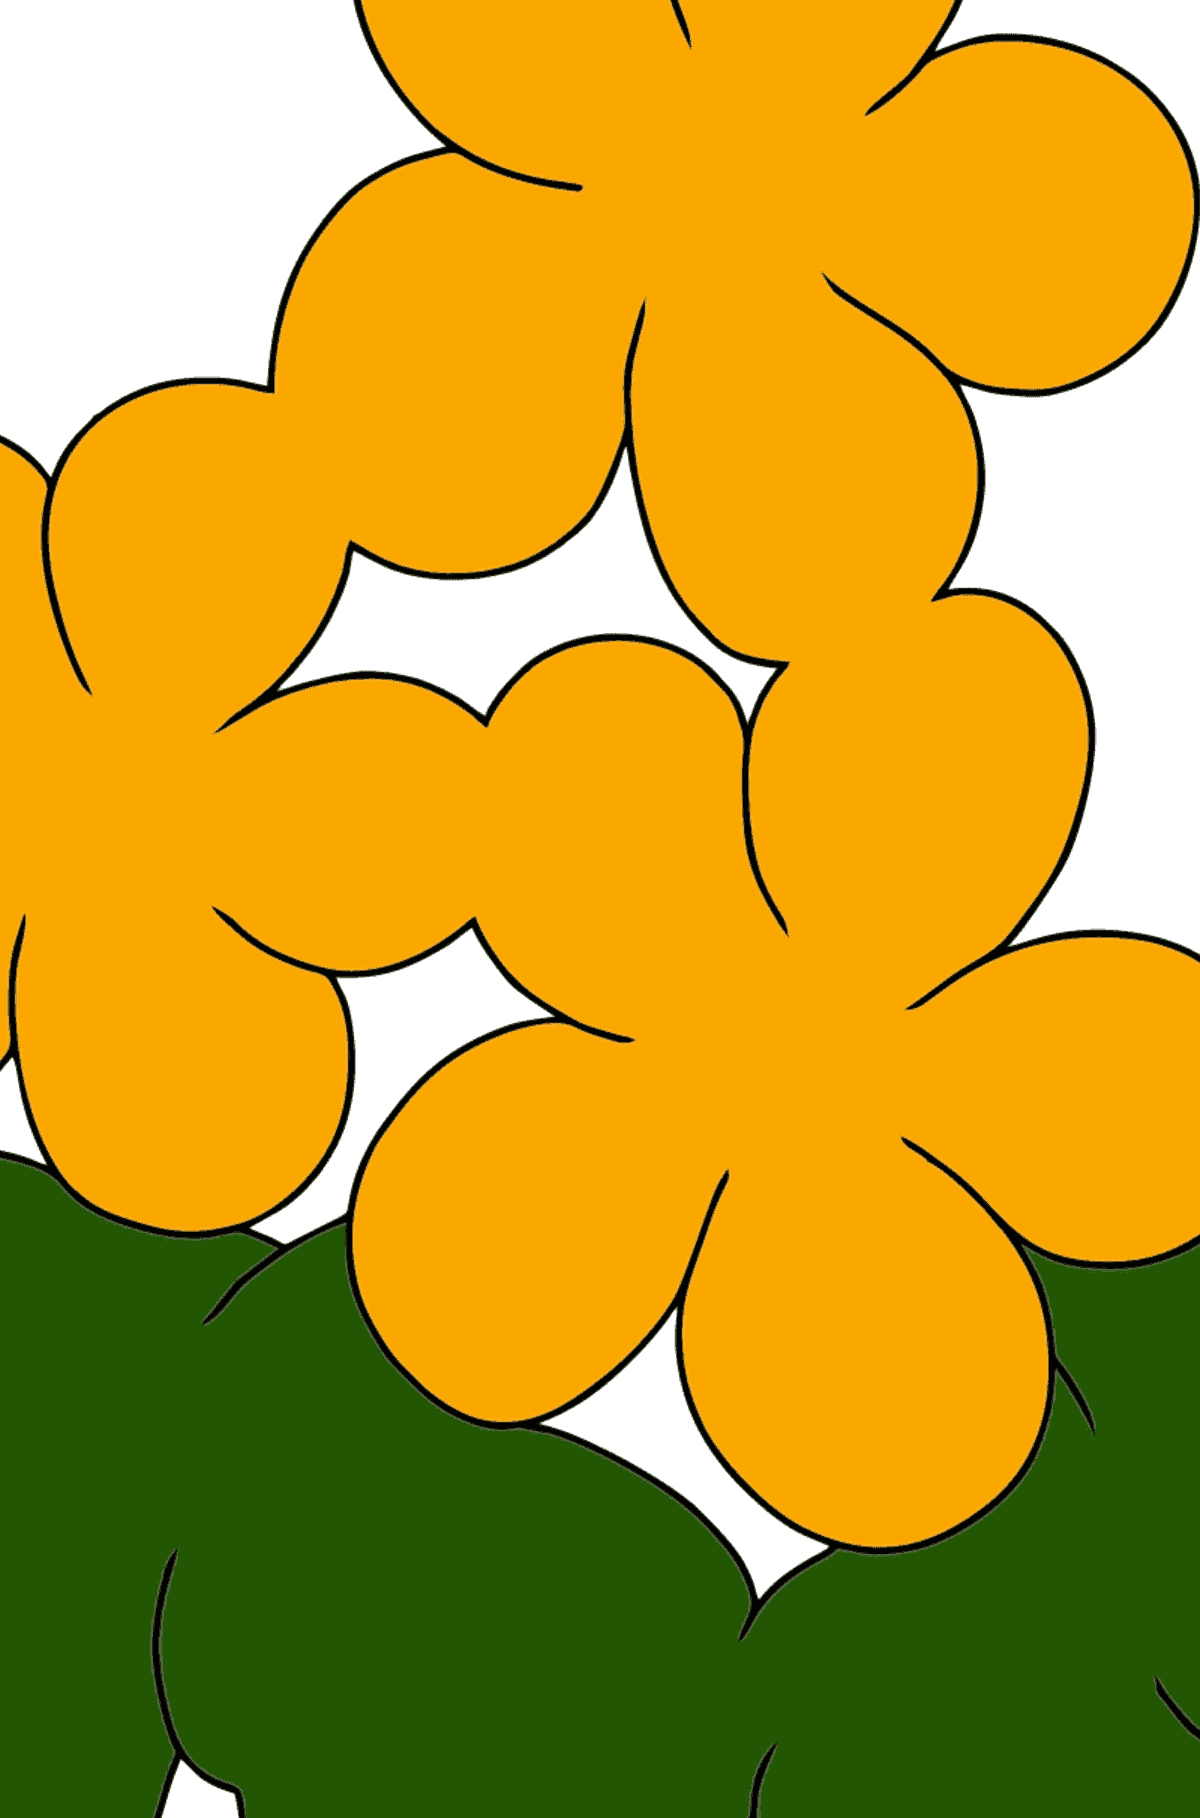 Coloring Page - Spring and First Flowers - Coloring by Numbers for Kids